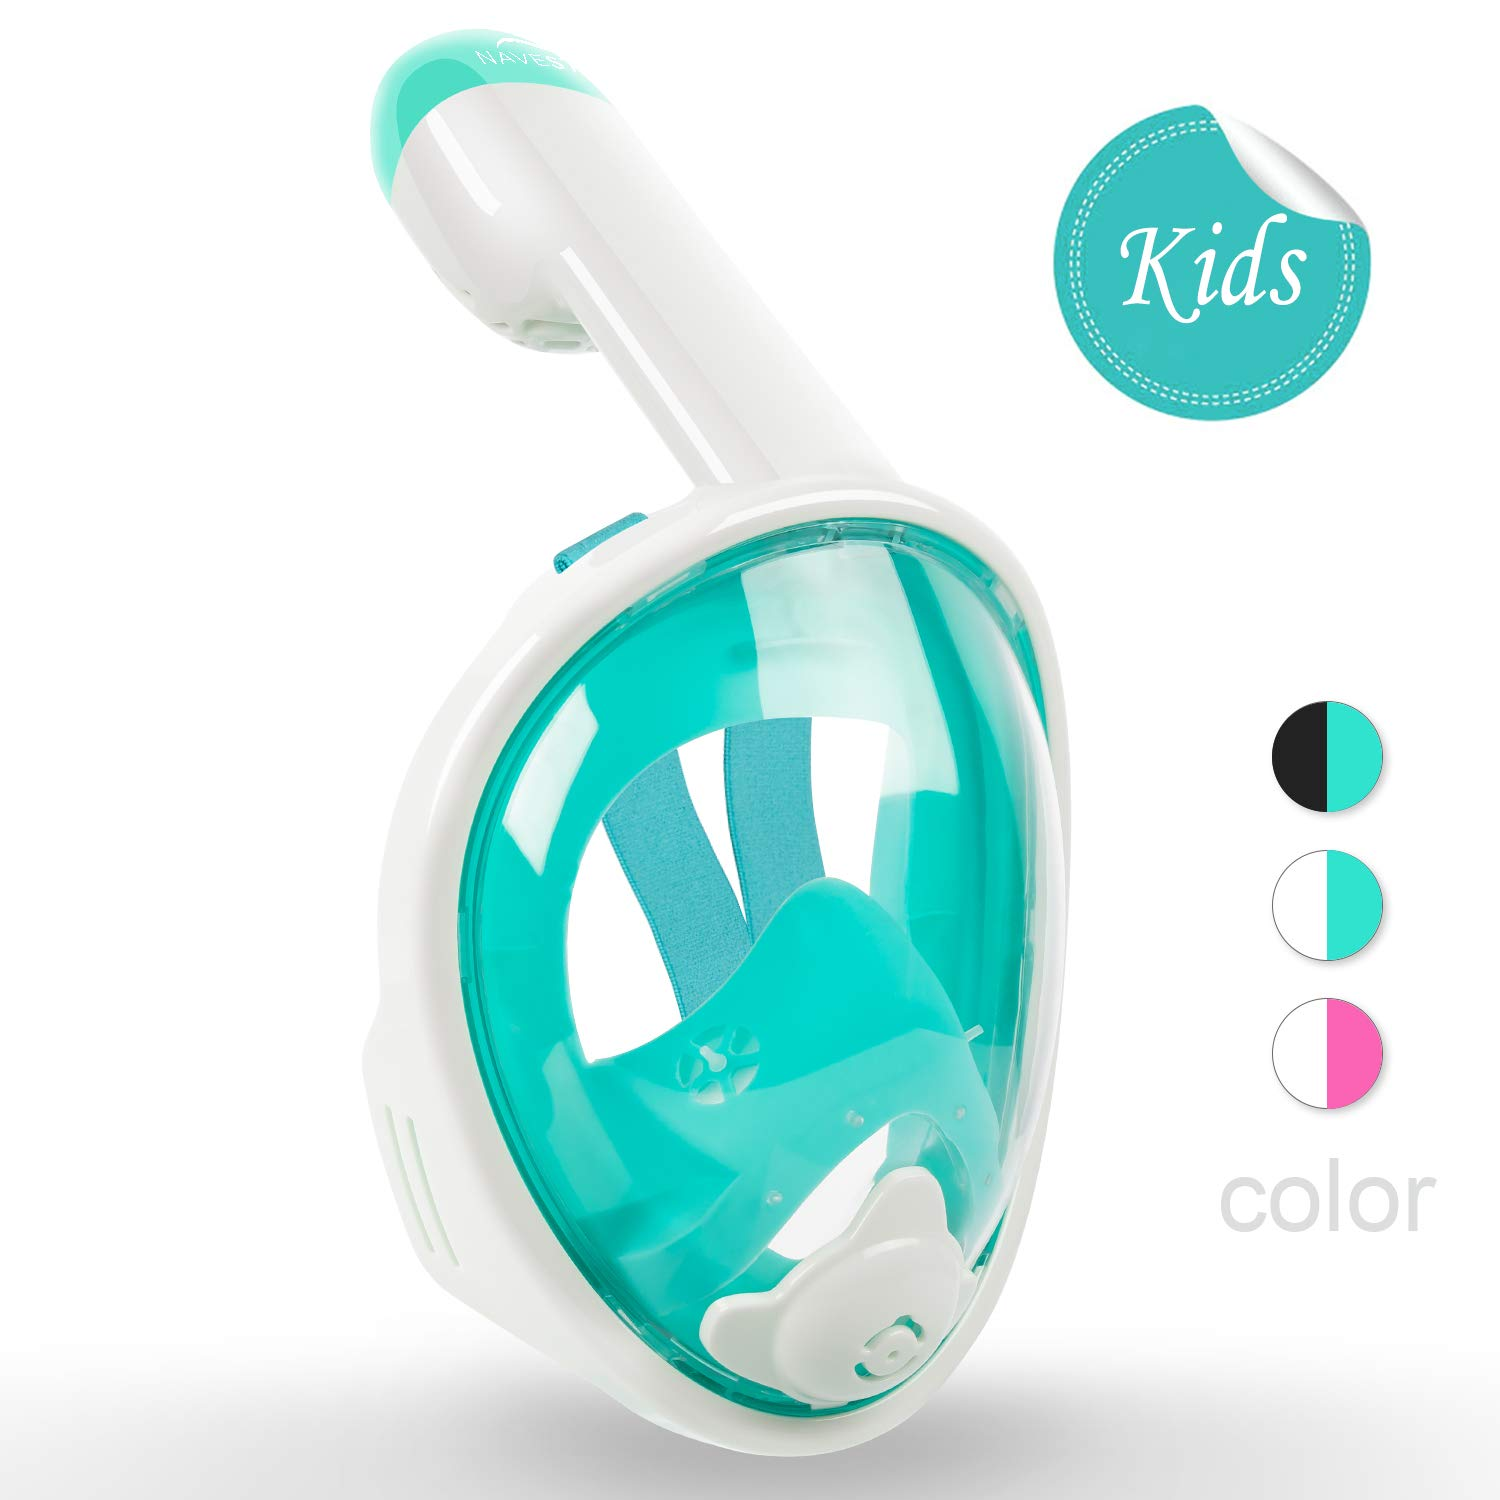 NAVESTAR Snorkeling Mask for Kids - 180° Panoramic View Easybreath Full Face Snorkel Mask with Gopro Mount & Ear Plugs, Anti-Fog & Anti-Leak Underwater Snorkel Mask (Green-White, XS) by NAVESTAR